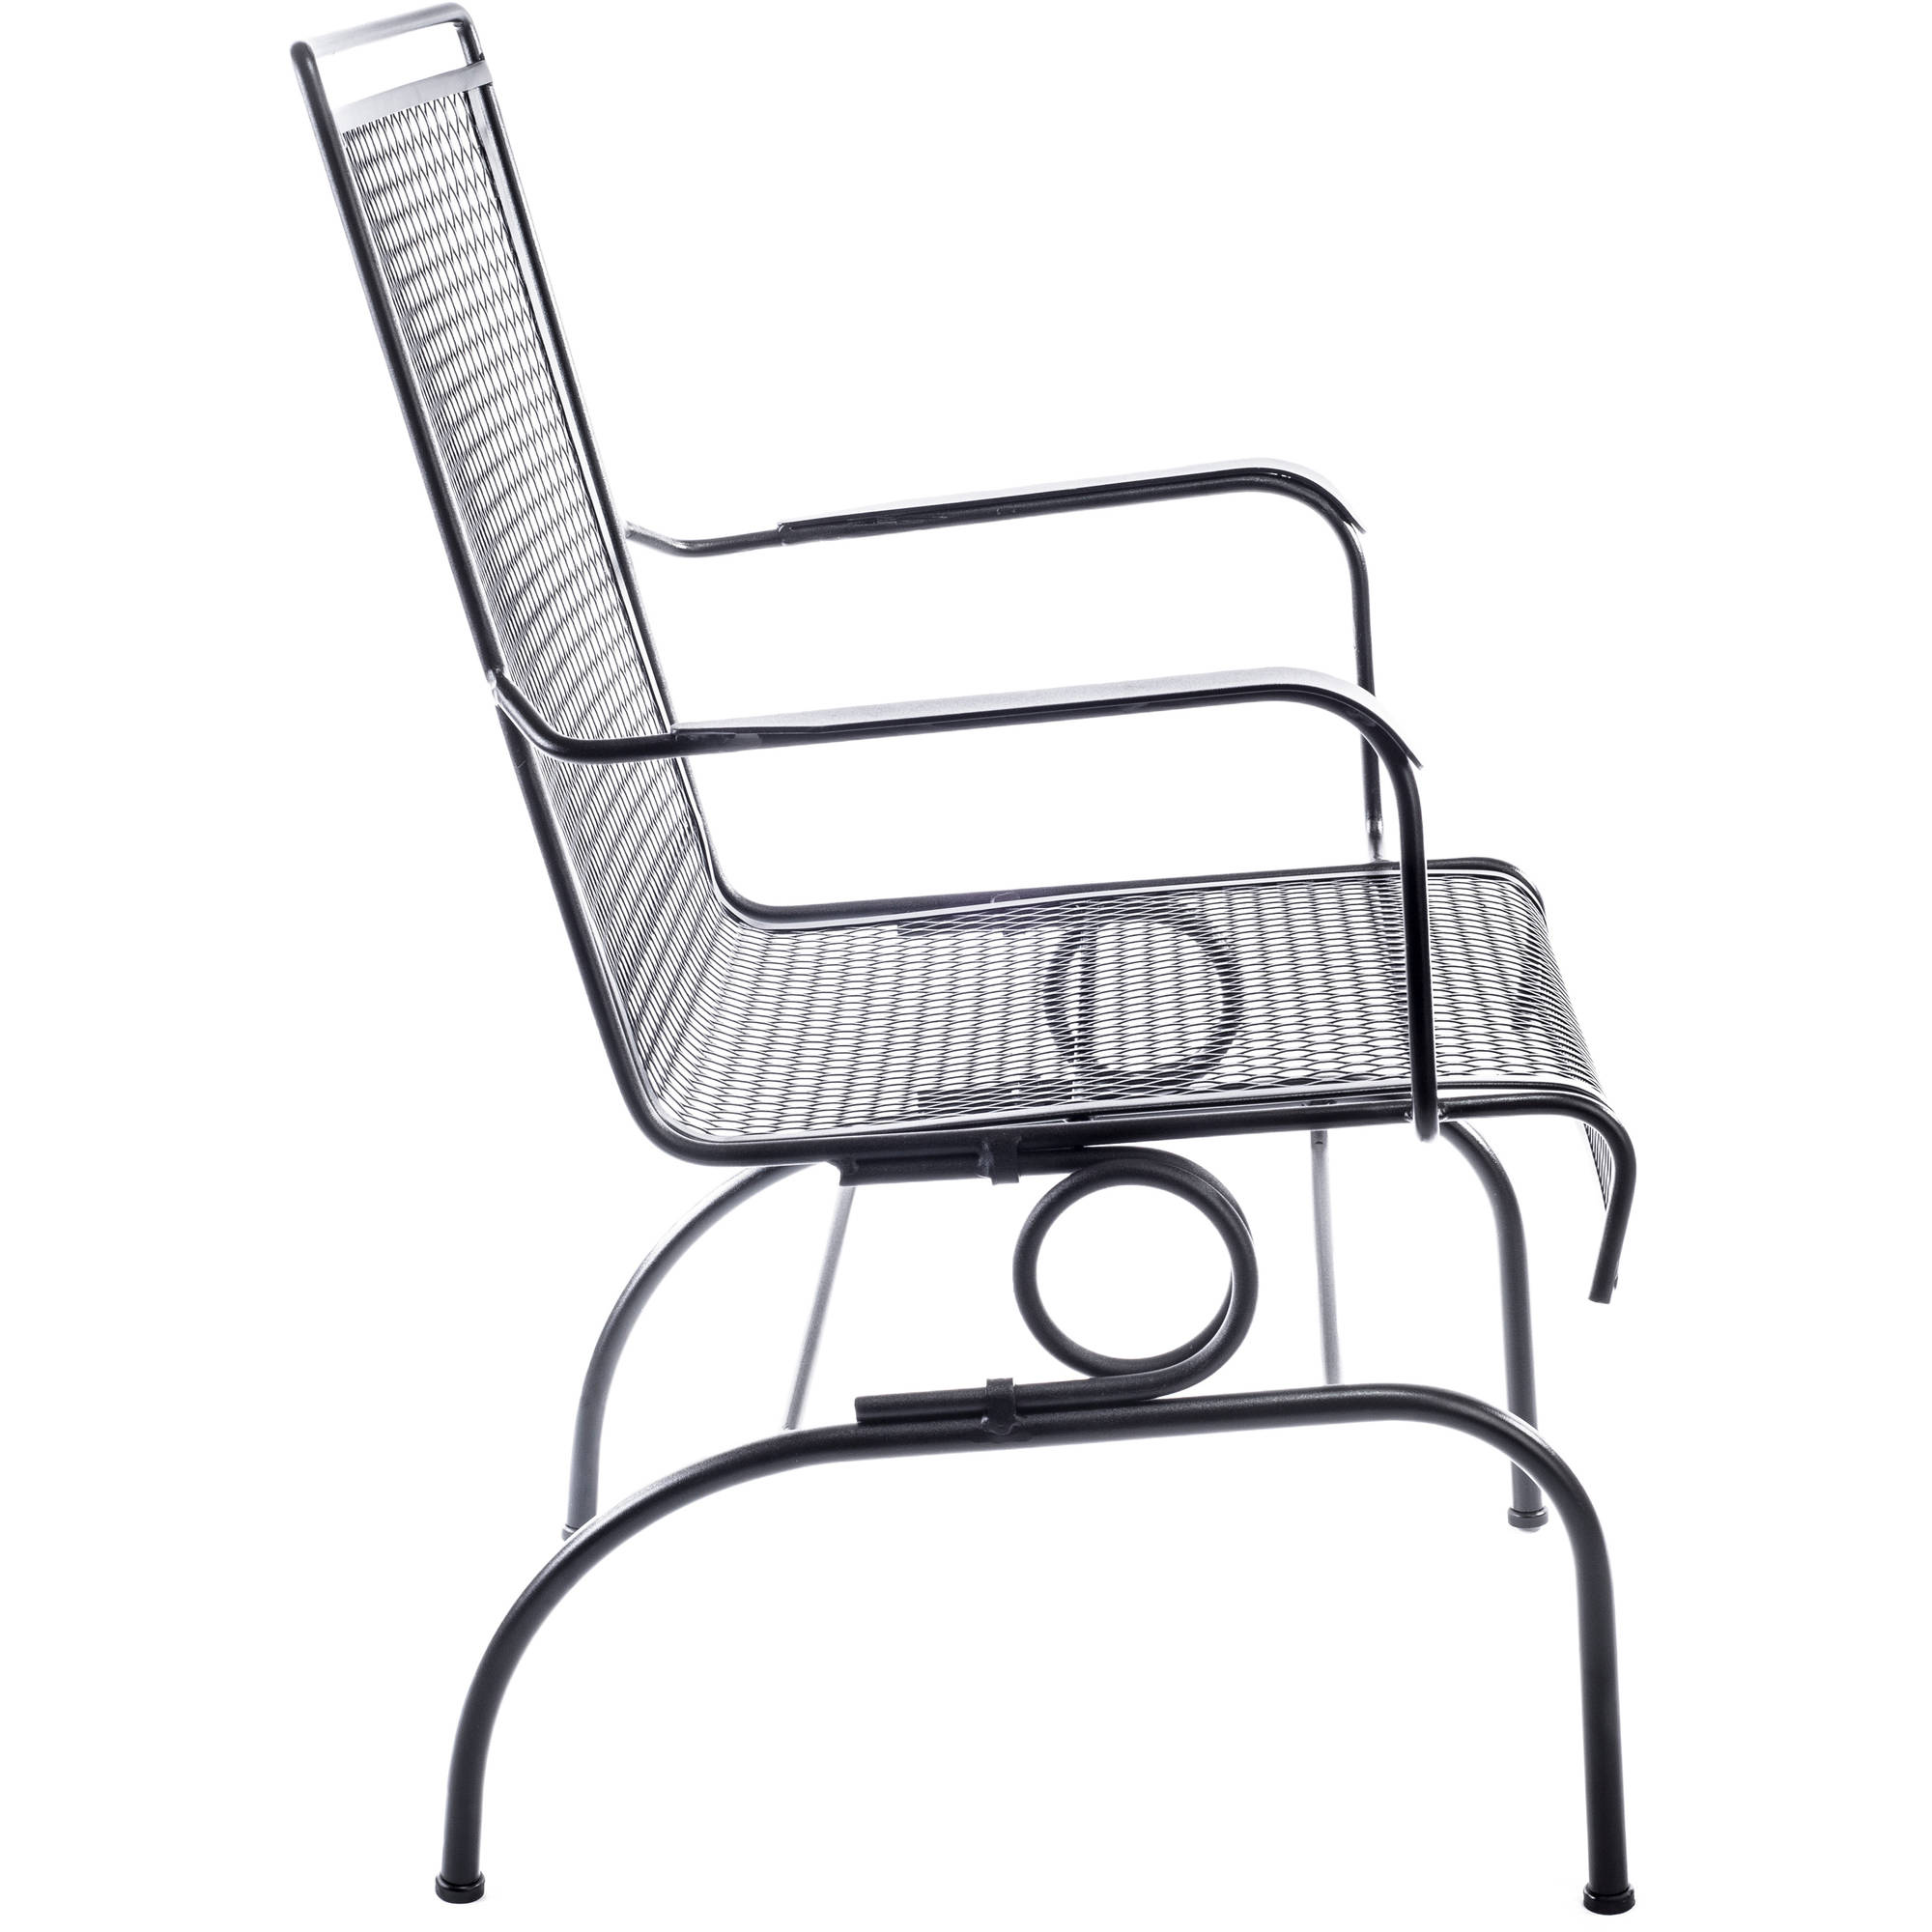 Arlington House Wrought Iron Motion Chair Outdoor Patio Furniture